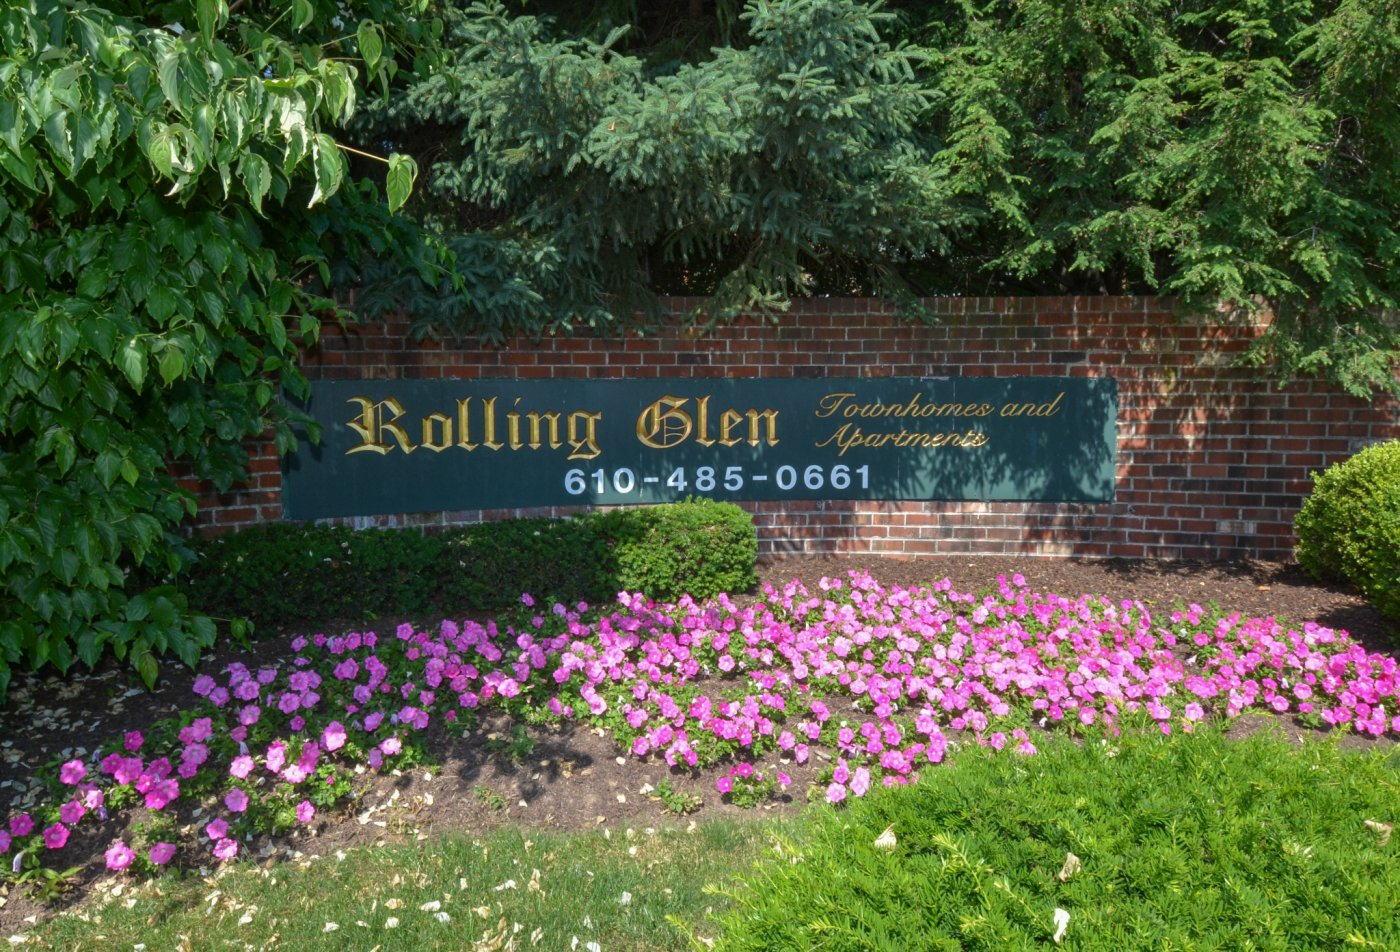 Apartments in Boothwyn, PA | Rolling Glen Townhomes and Apartments